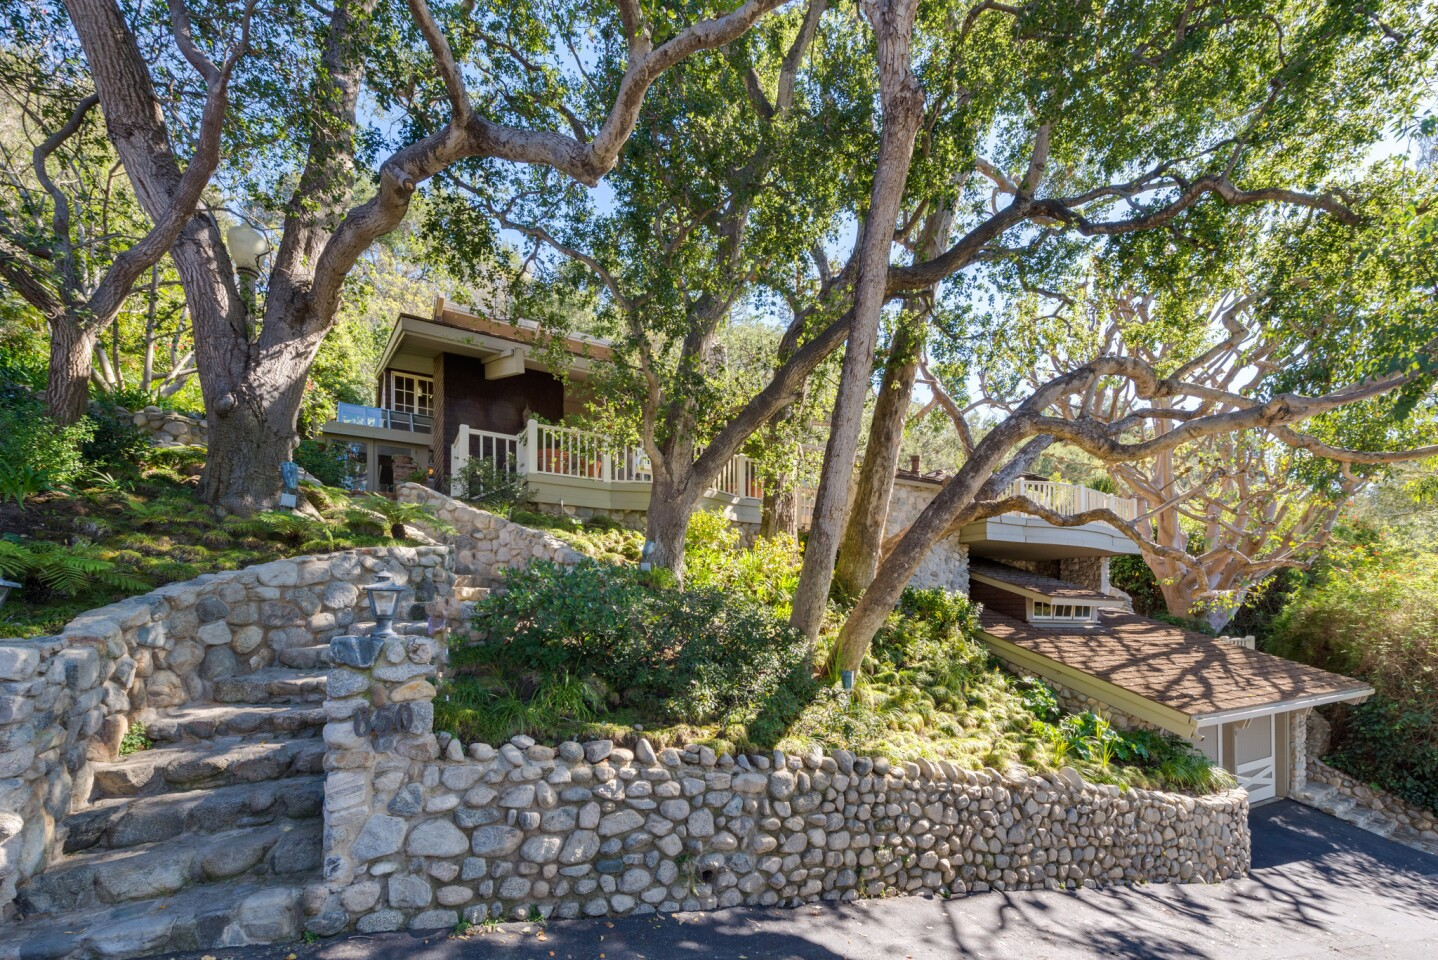 Home of the Day: Romantic retreat in Rustic Canyon